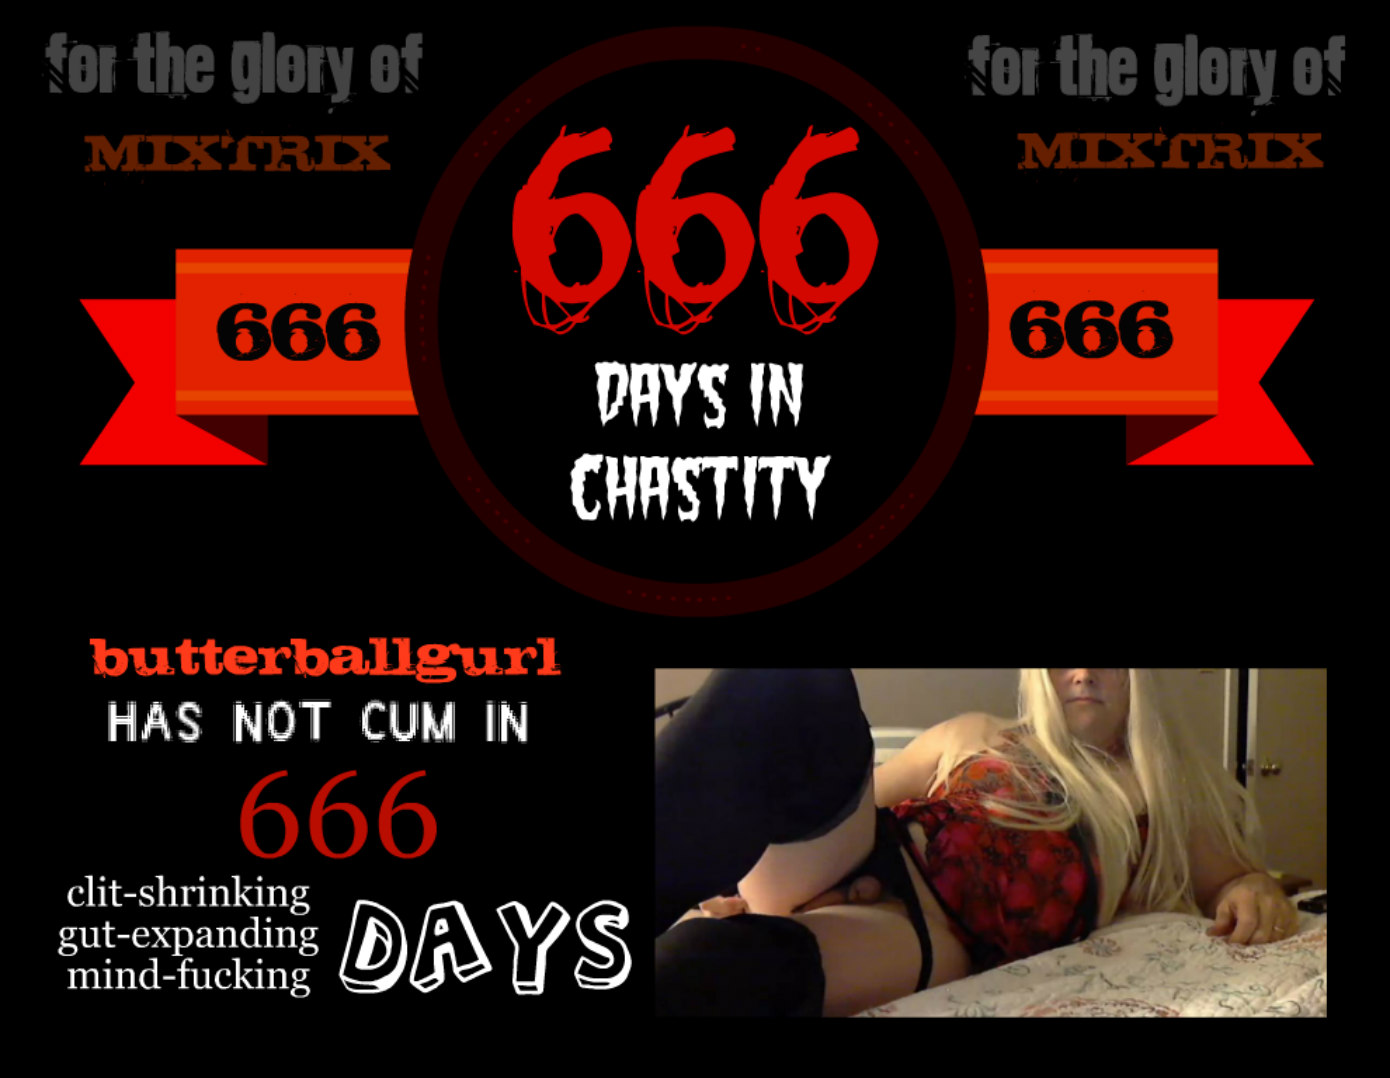 666 days without cumming